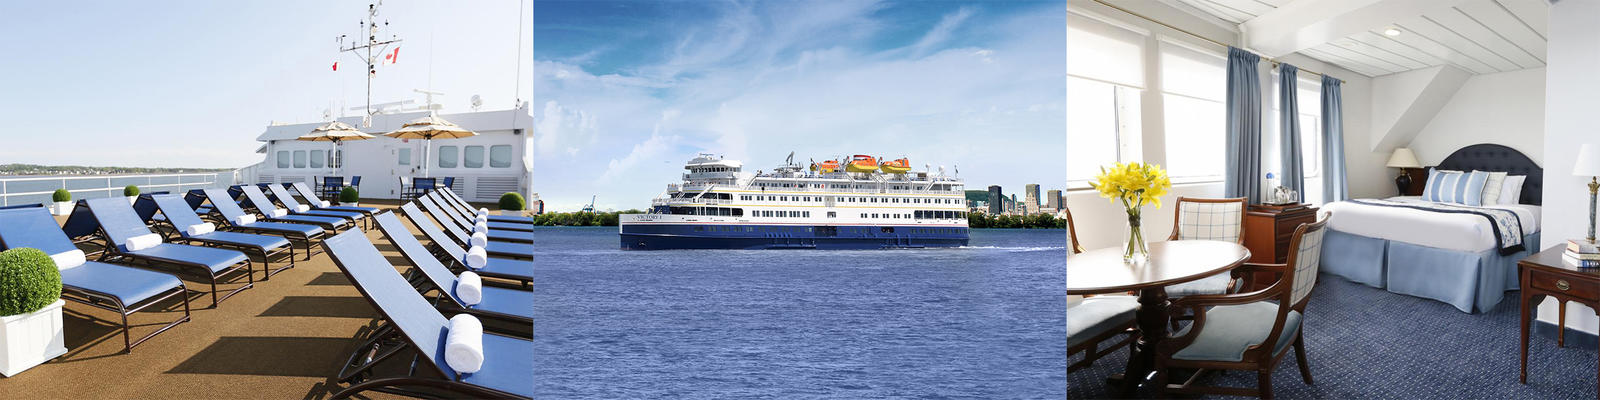 Best Victory Cruise Lines Cruises 2019 Reviews Photos Amp Activities